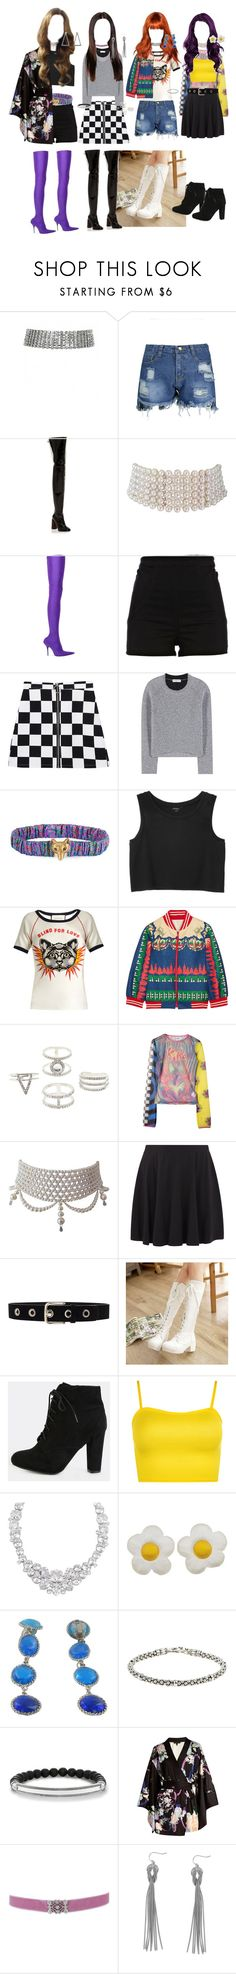 """BLACKPINK AS IF IT'S YOUR LAST OUTFITS"" by sbello ❤ liked on Polyvore featuring E L L E R Y, Marina J., Balenciaga, River Island, Gucci, Monki, Anna Sui, Charlotte Russe, New Look and Lovers + Friends"